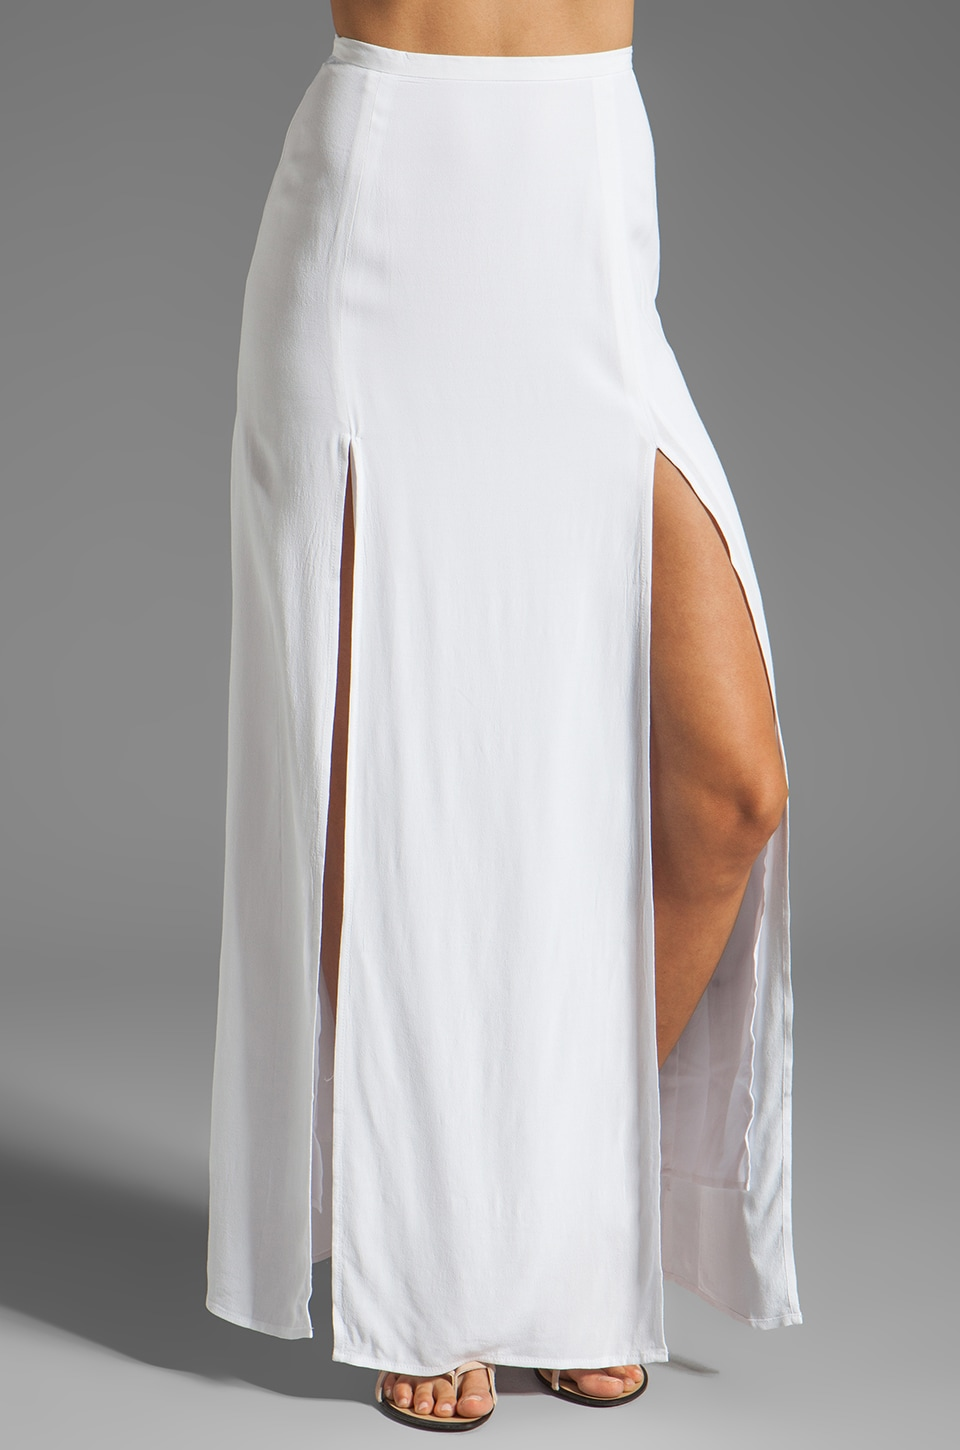 BB Dakota McKinley Hammered Fabric Slit Maxi Skirt in Optic White